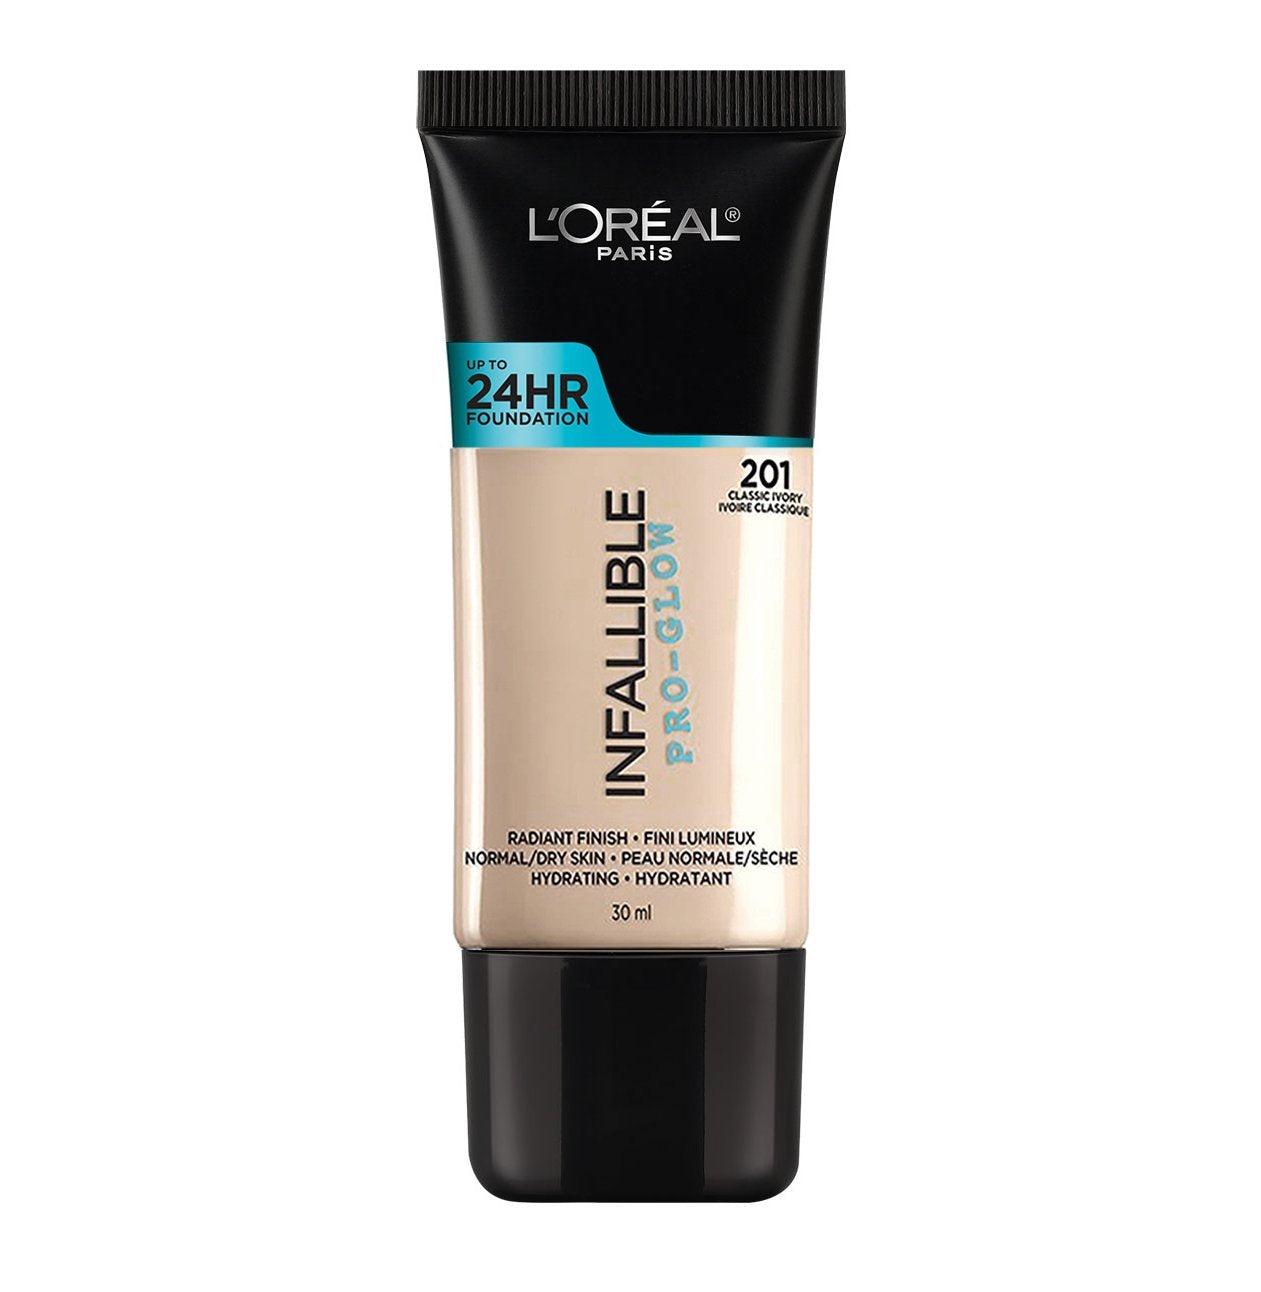 L'Oreal Paris Infallible Pro Glow Foundation